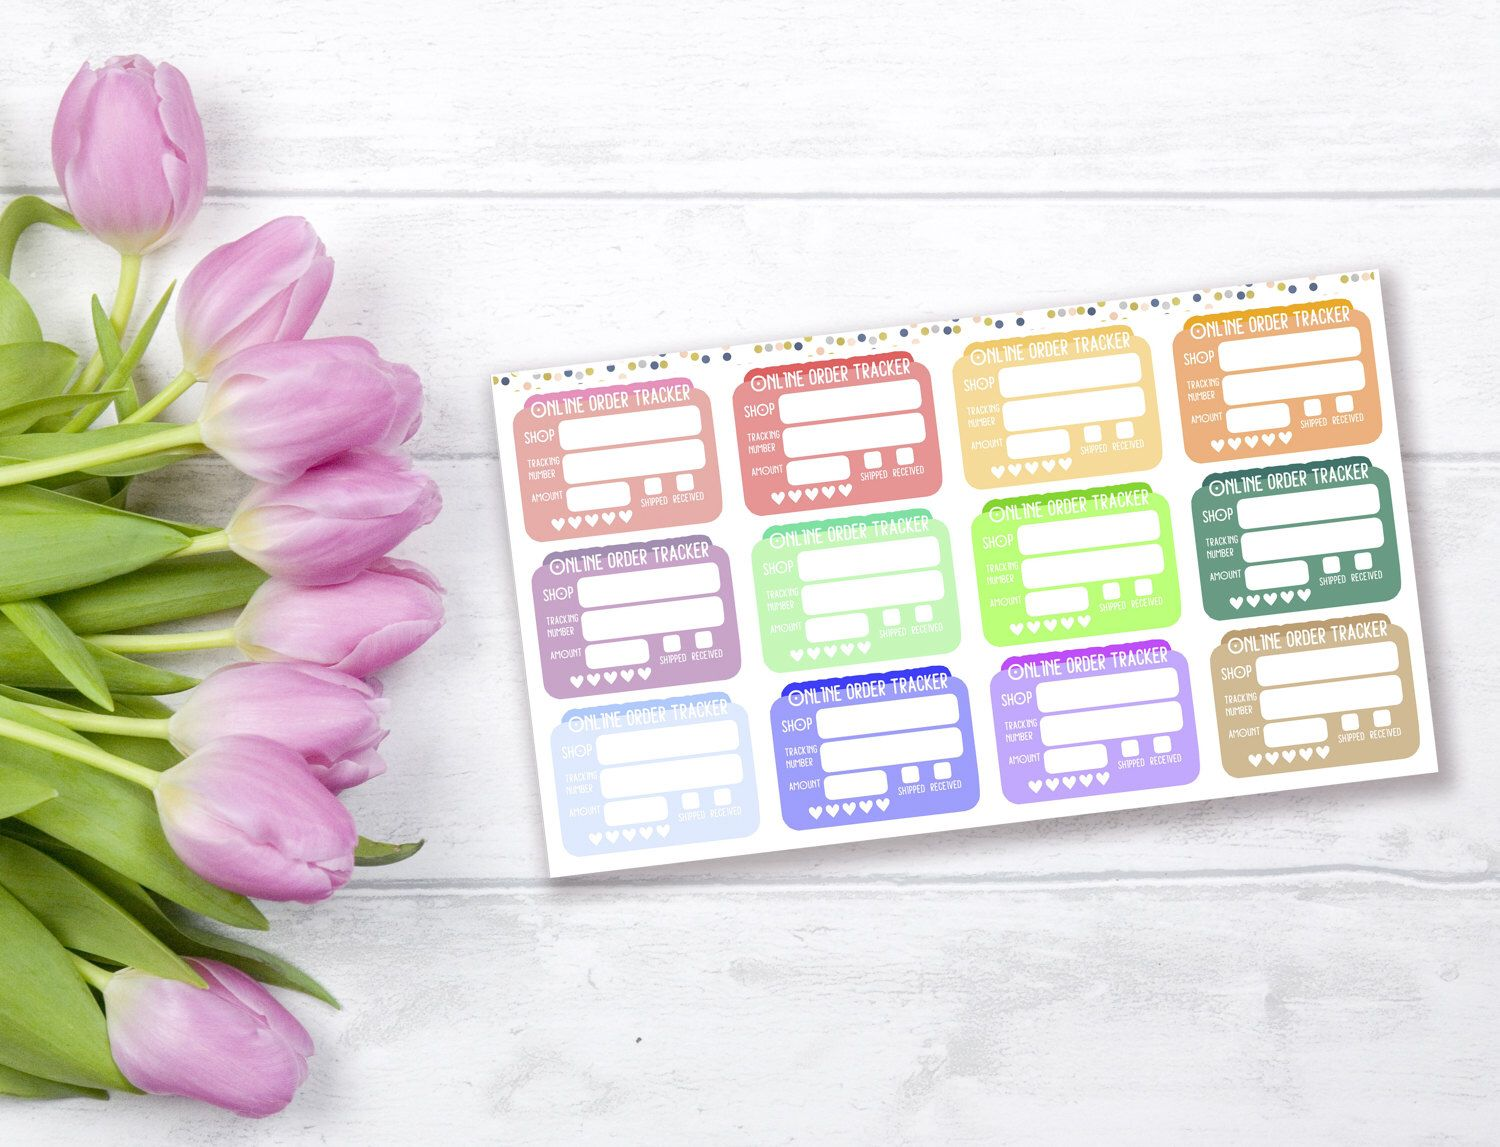 6d176e0ca2f89 Printable online order tracker stickers, Etsy orders stickers ...